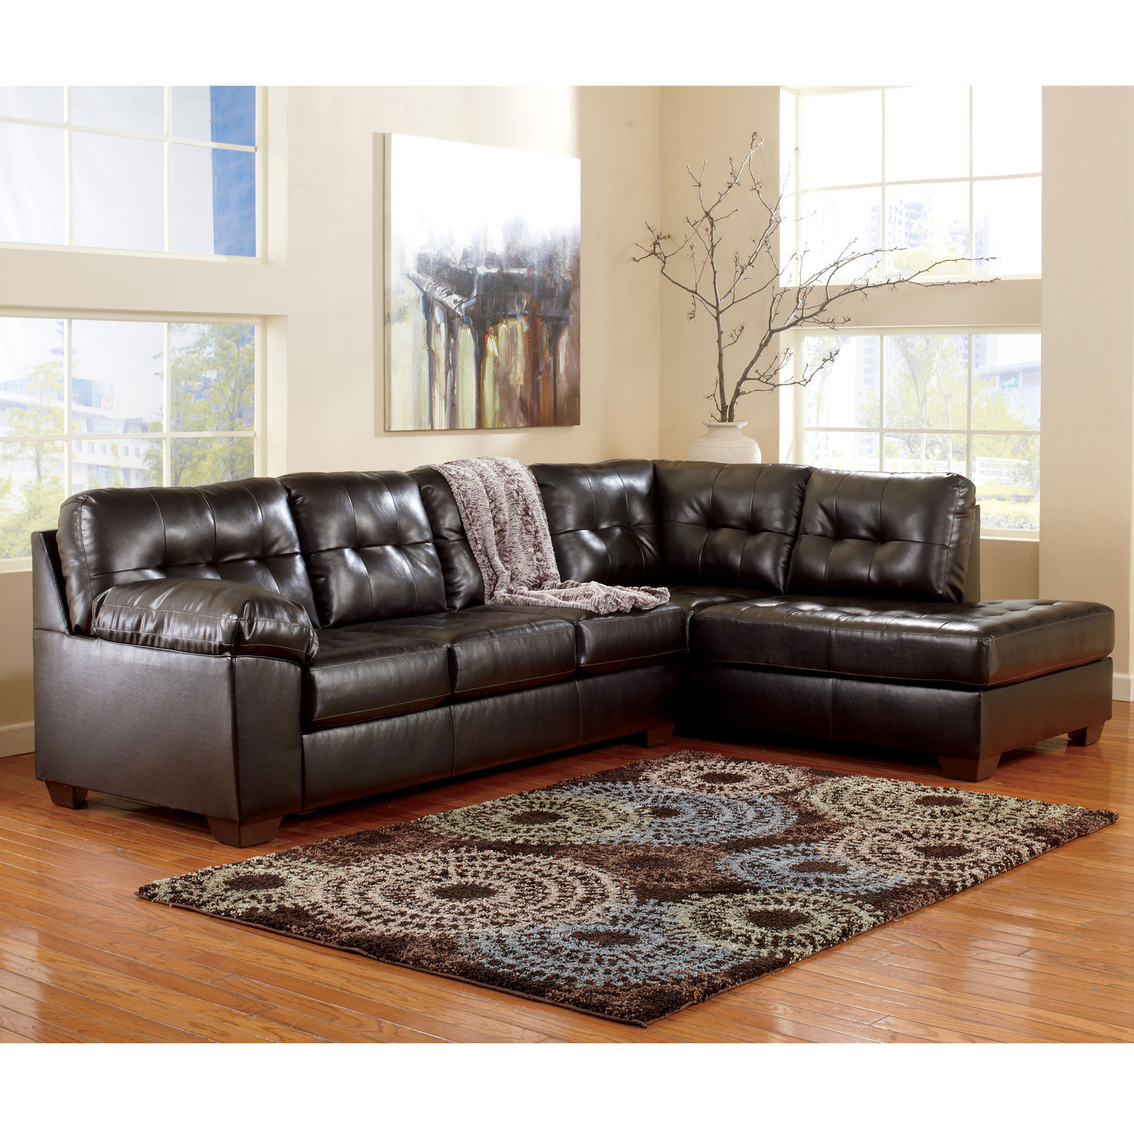 Signature design by ashley alliston durablend 2 pc for Ashley furniture chaise lounge prices